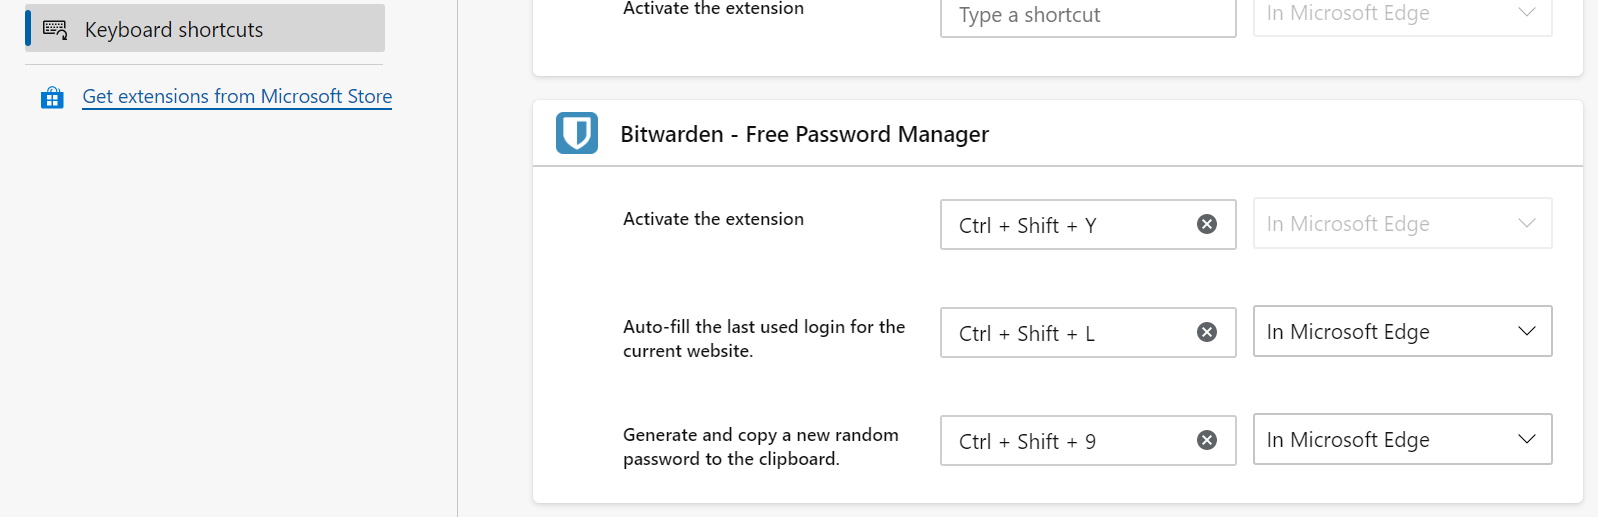 Microsoft Edge Chromium Autofill Shortcut · Issue #950 · bitwarden